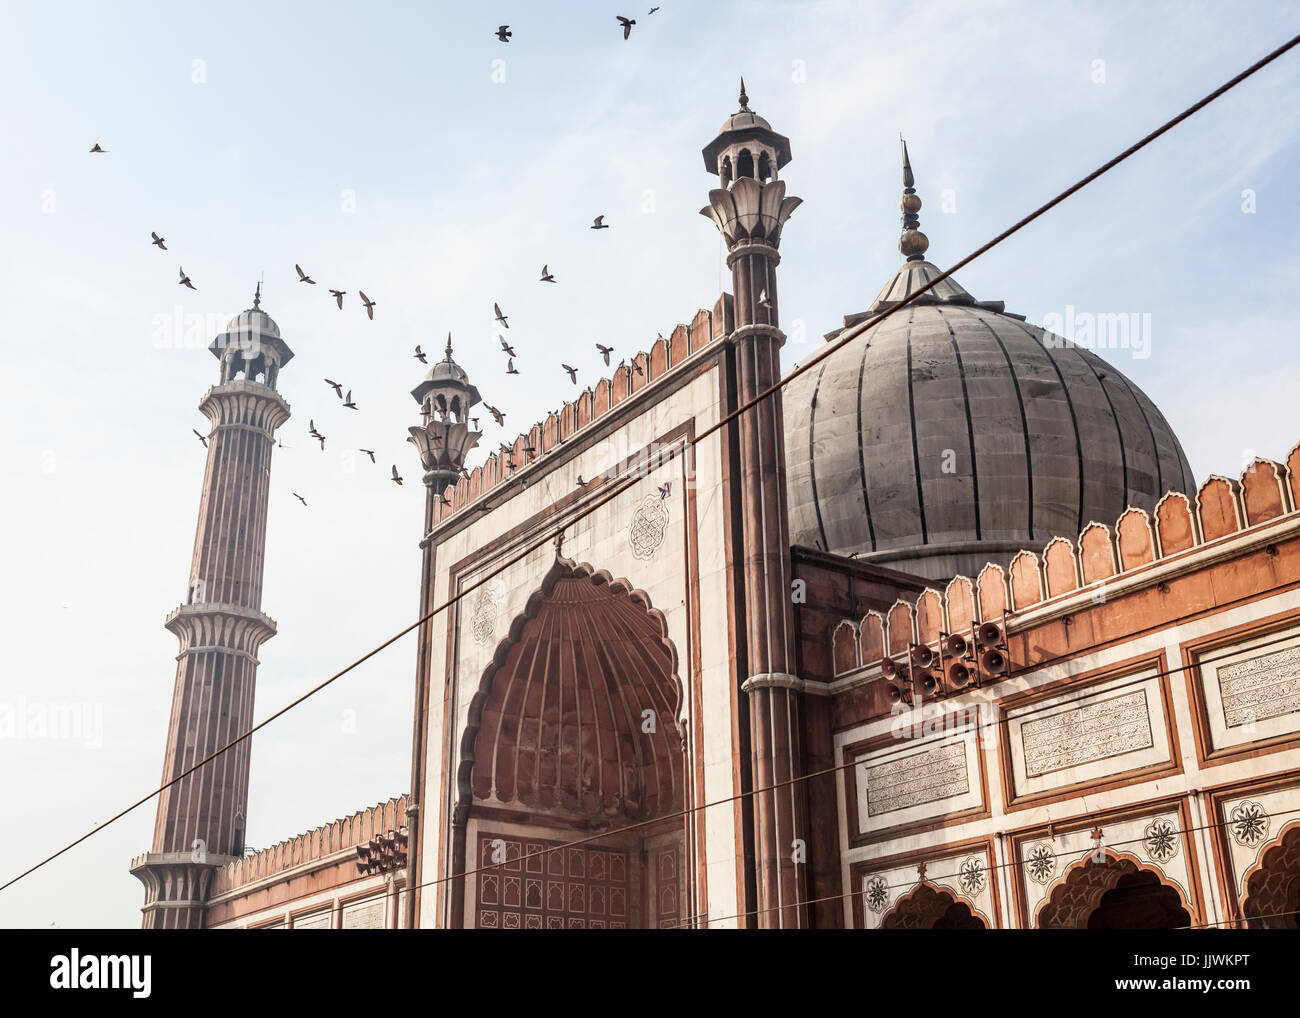 Birds flying about above Jama Masjid in Delhi, India - Stock Image